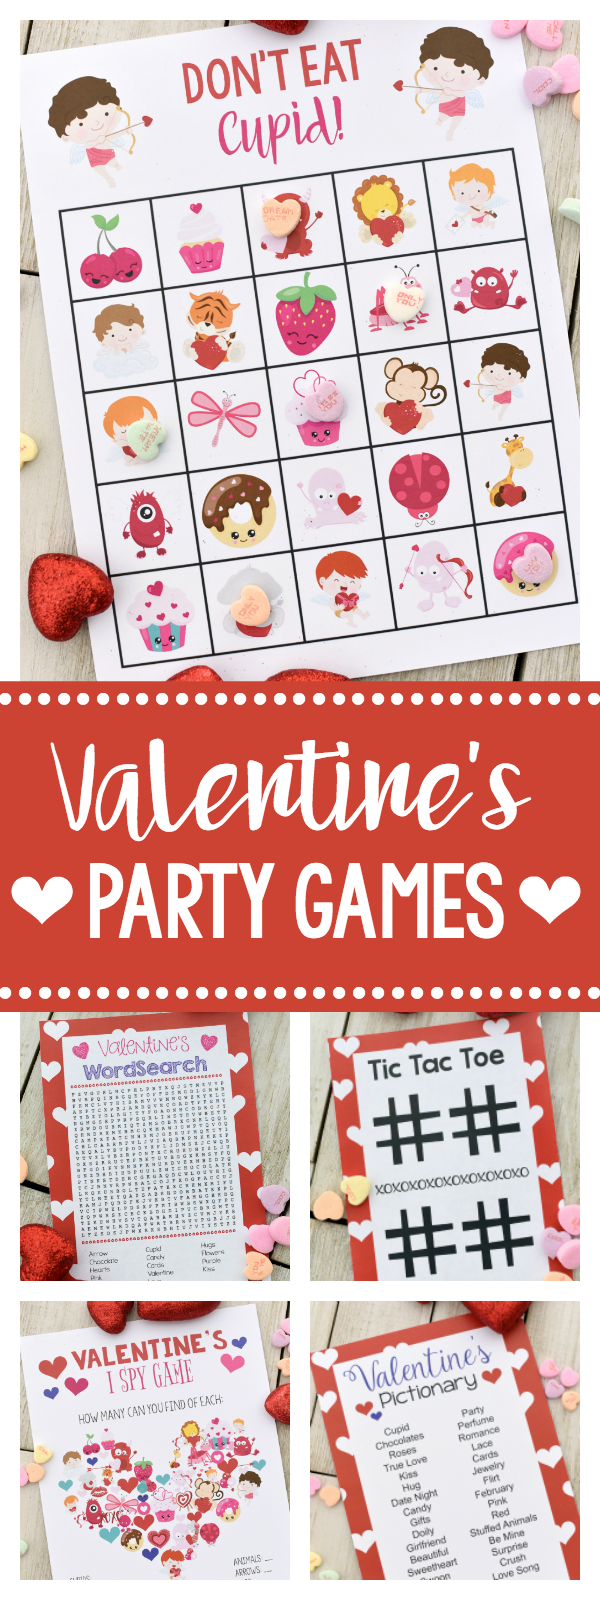 Fun Valentine Games to Print and Play for your Valentine's Day parties! Bingo, Don't Eat Cupid, Word Search and more! This will make planning your Valentine's Day party so easy! #valentinesday #valentinesparty #partyideas #kidsparty